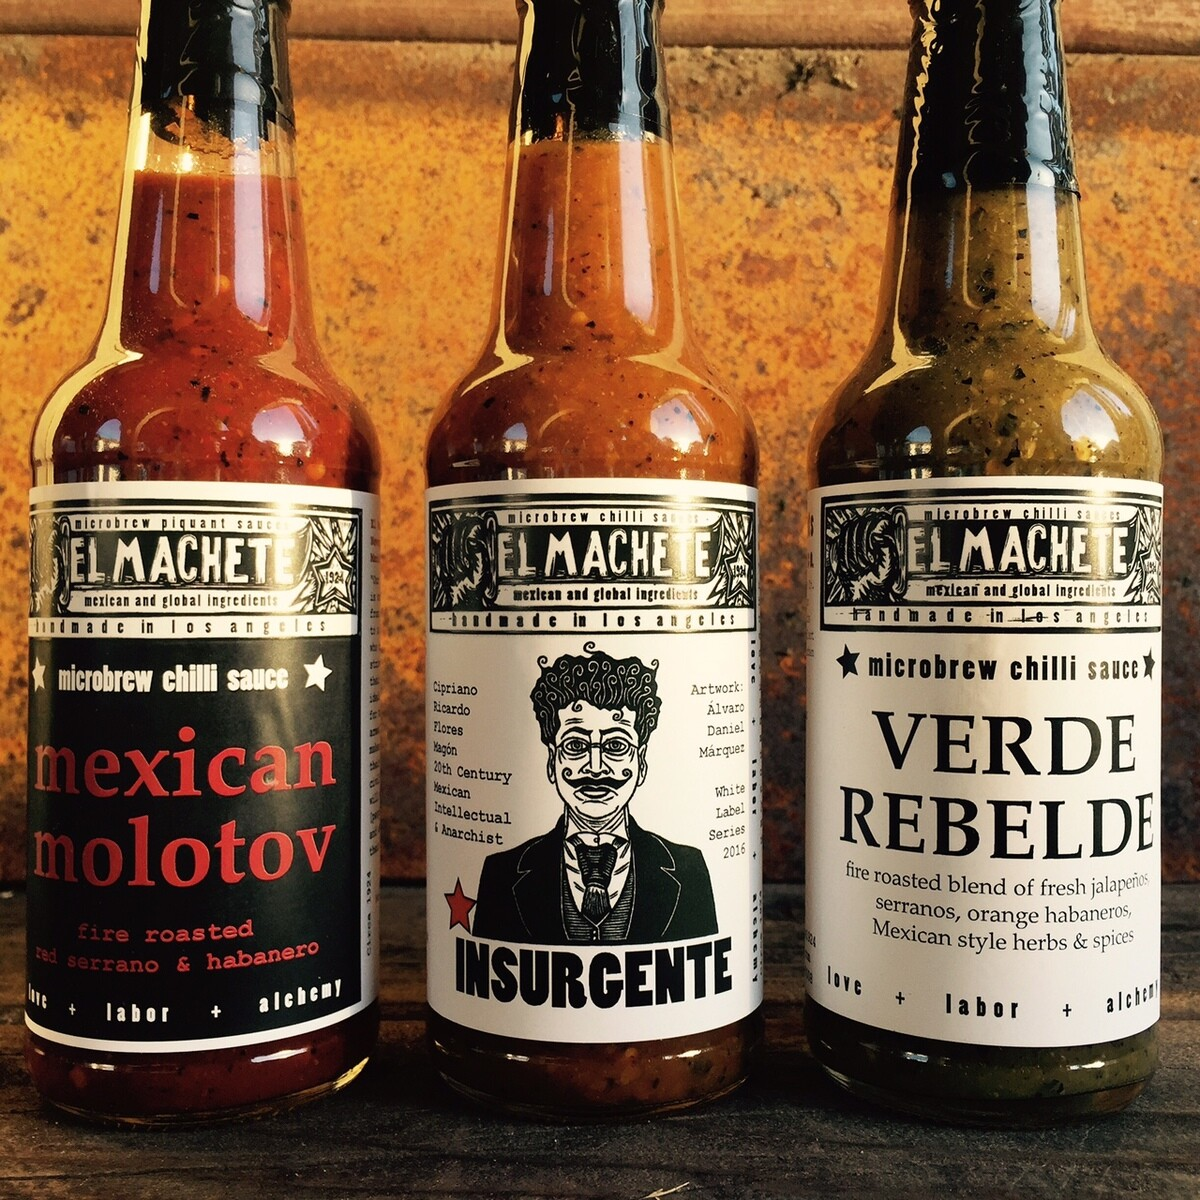 El Machete hot sauces | Courtesy of El Machete